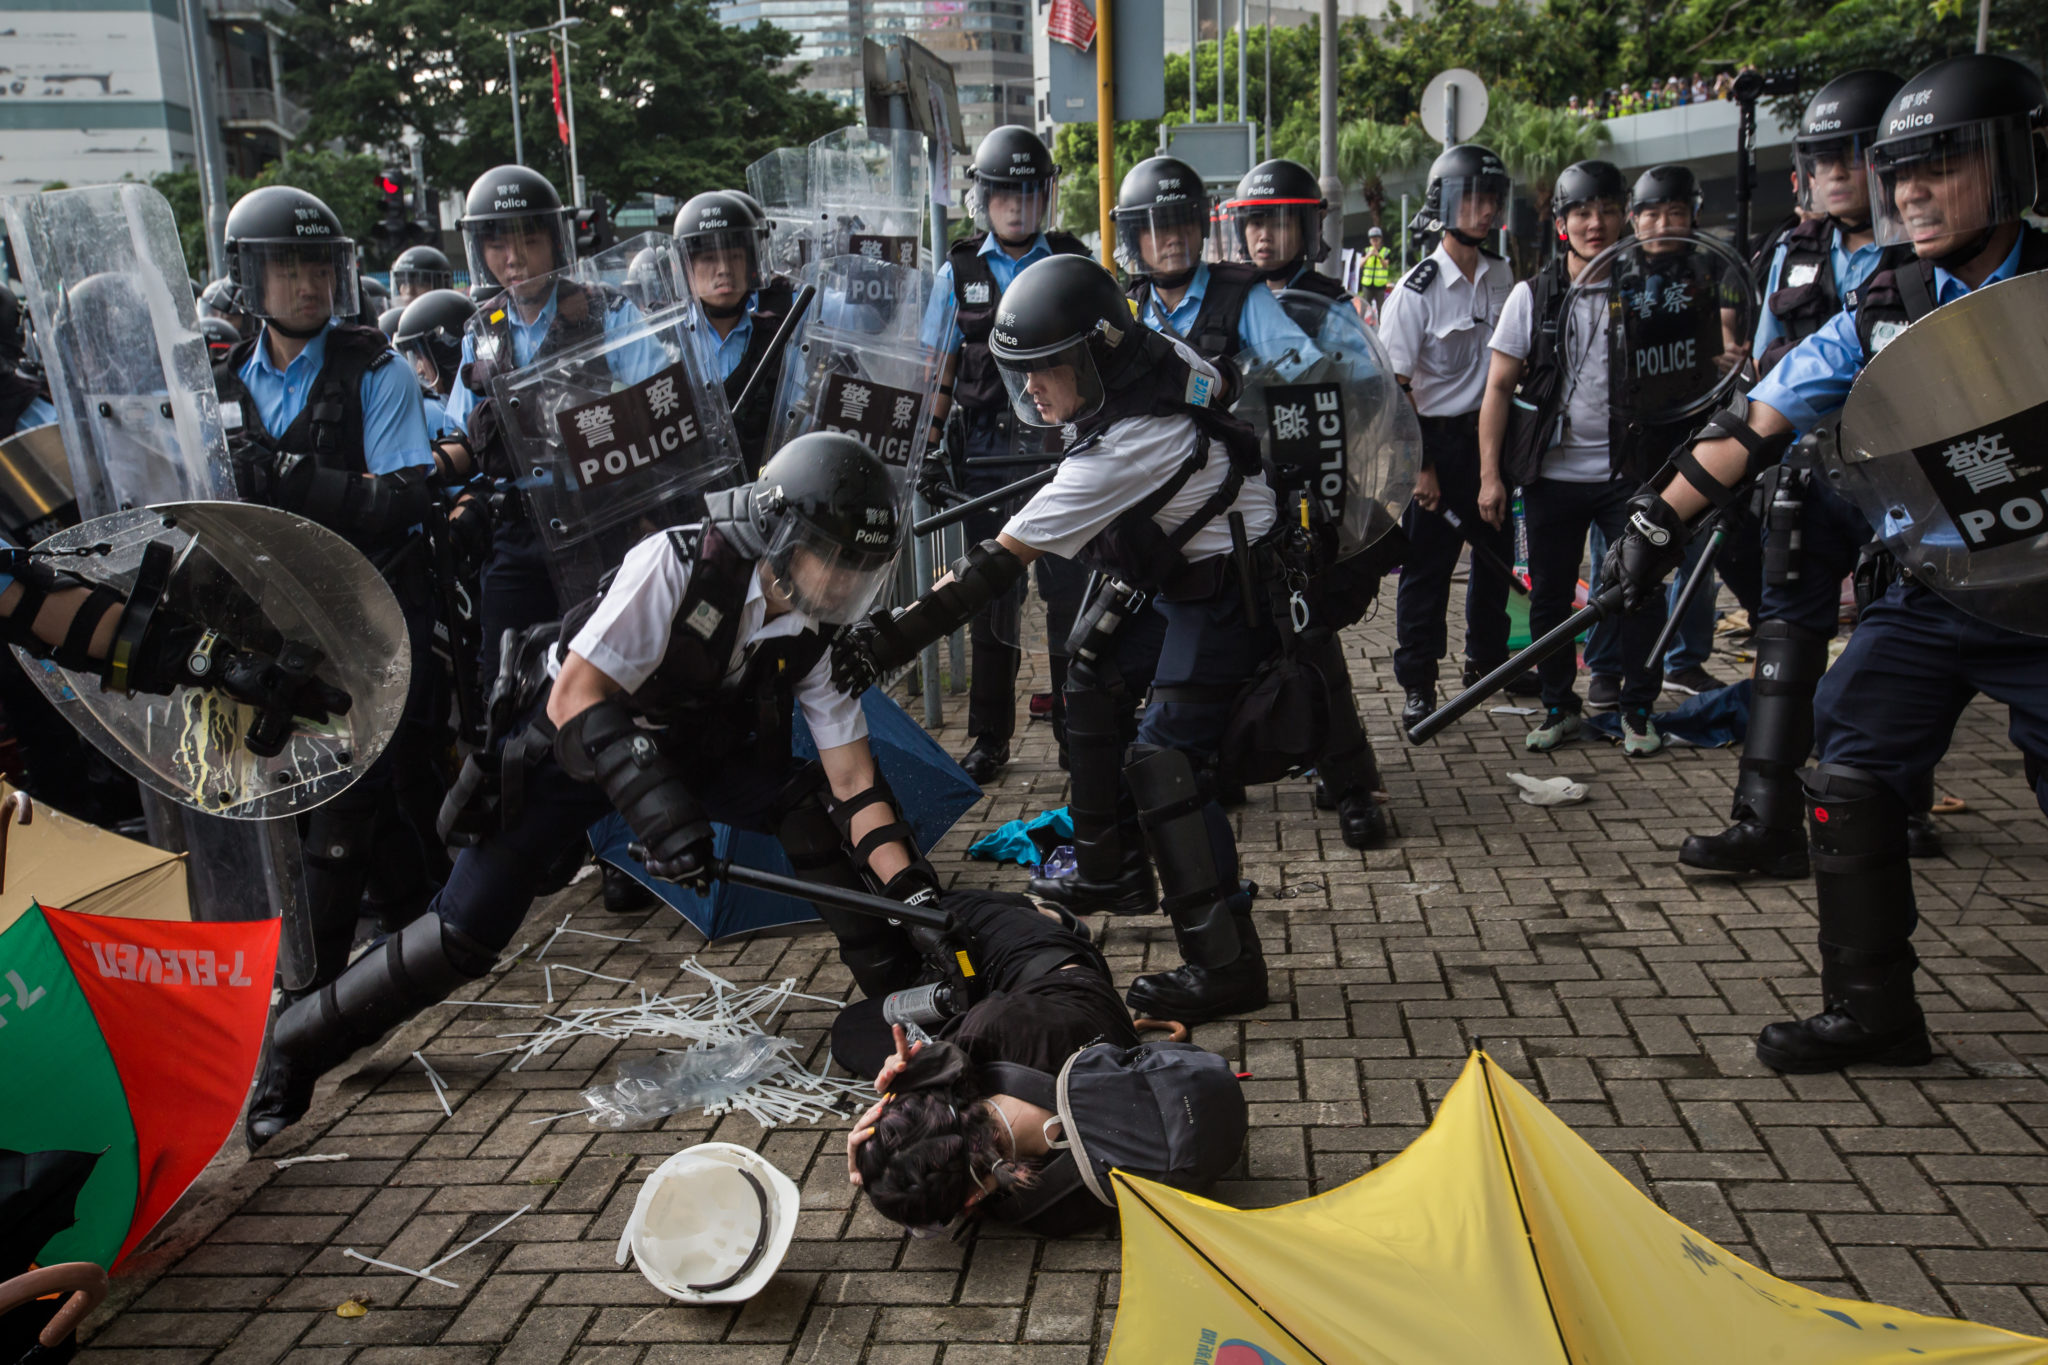 Hong Kong: Withdrawal of Extradition Bill – investigation of police violence still needed